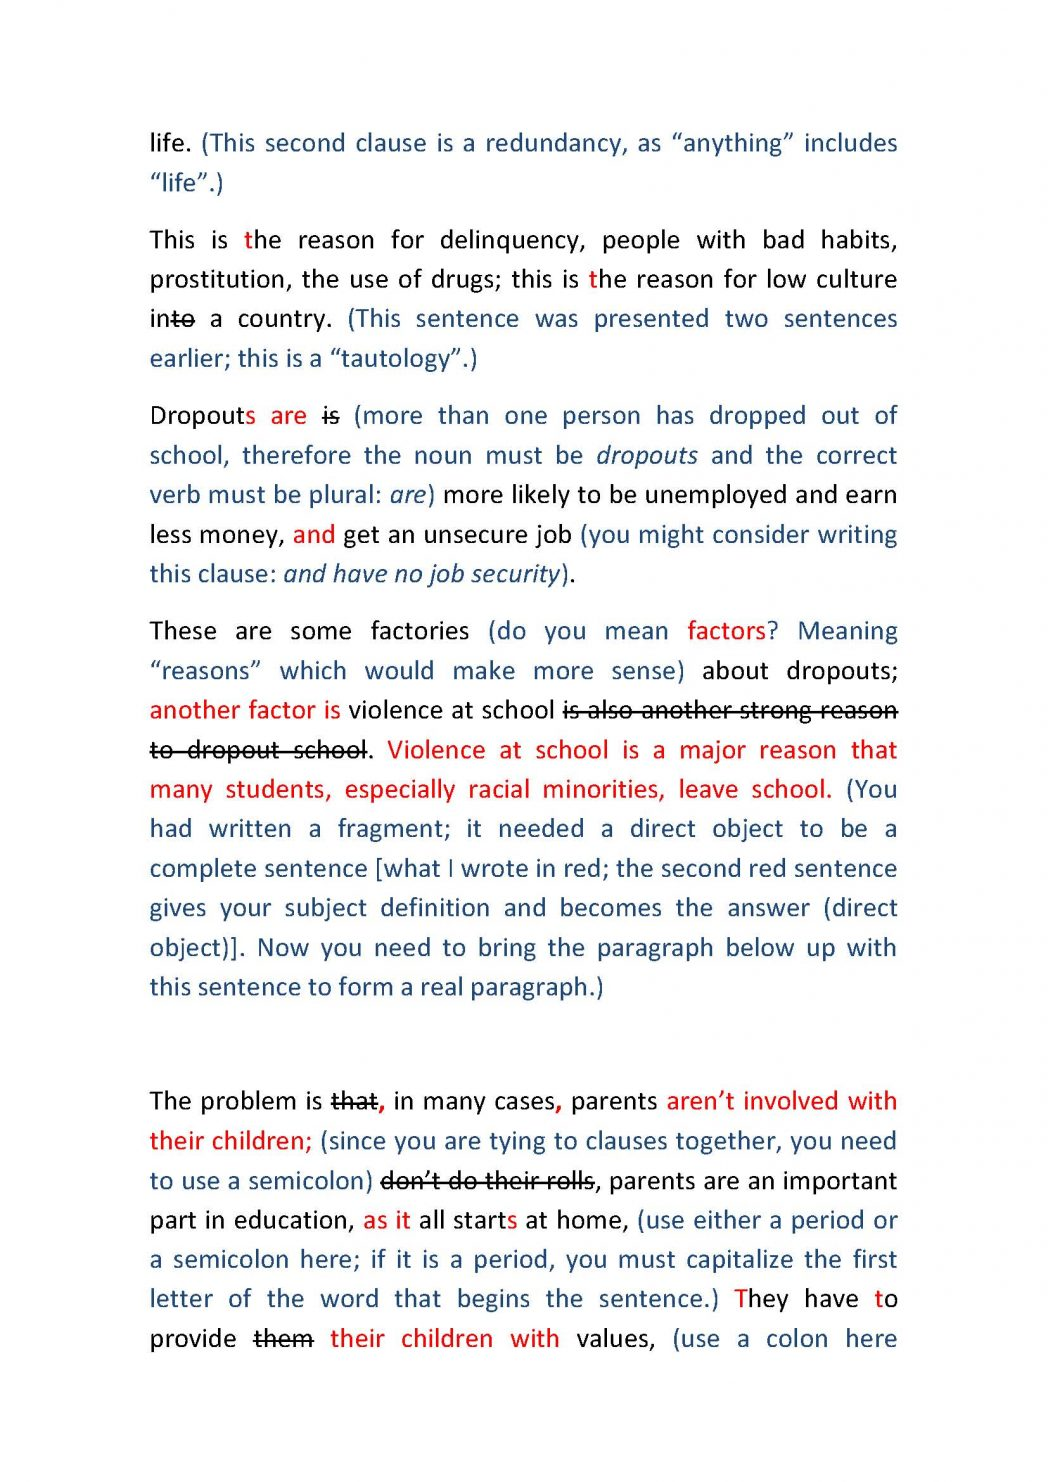 026 Abortion Pro Life Essay For High School Does Judith Persuasive Topics About Cyberbullying Dropouts Dialey Read And Graded Pa Cyber Bullying Argumentative 1048x1482 Stupendous Contest 2018 2019 Titles Full